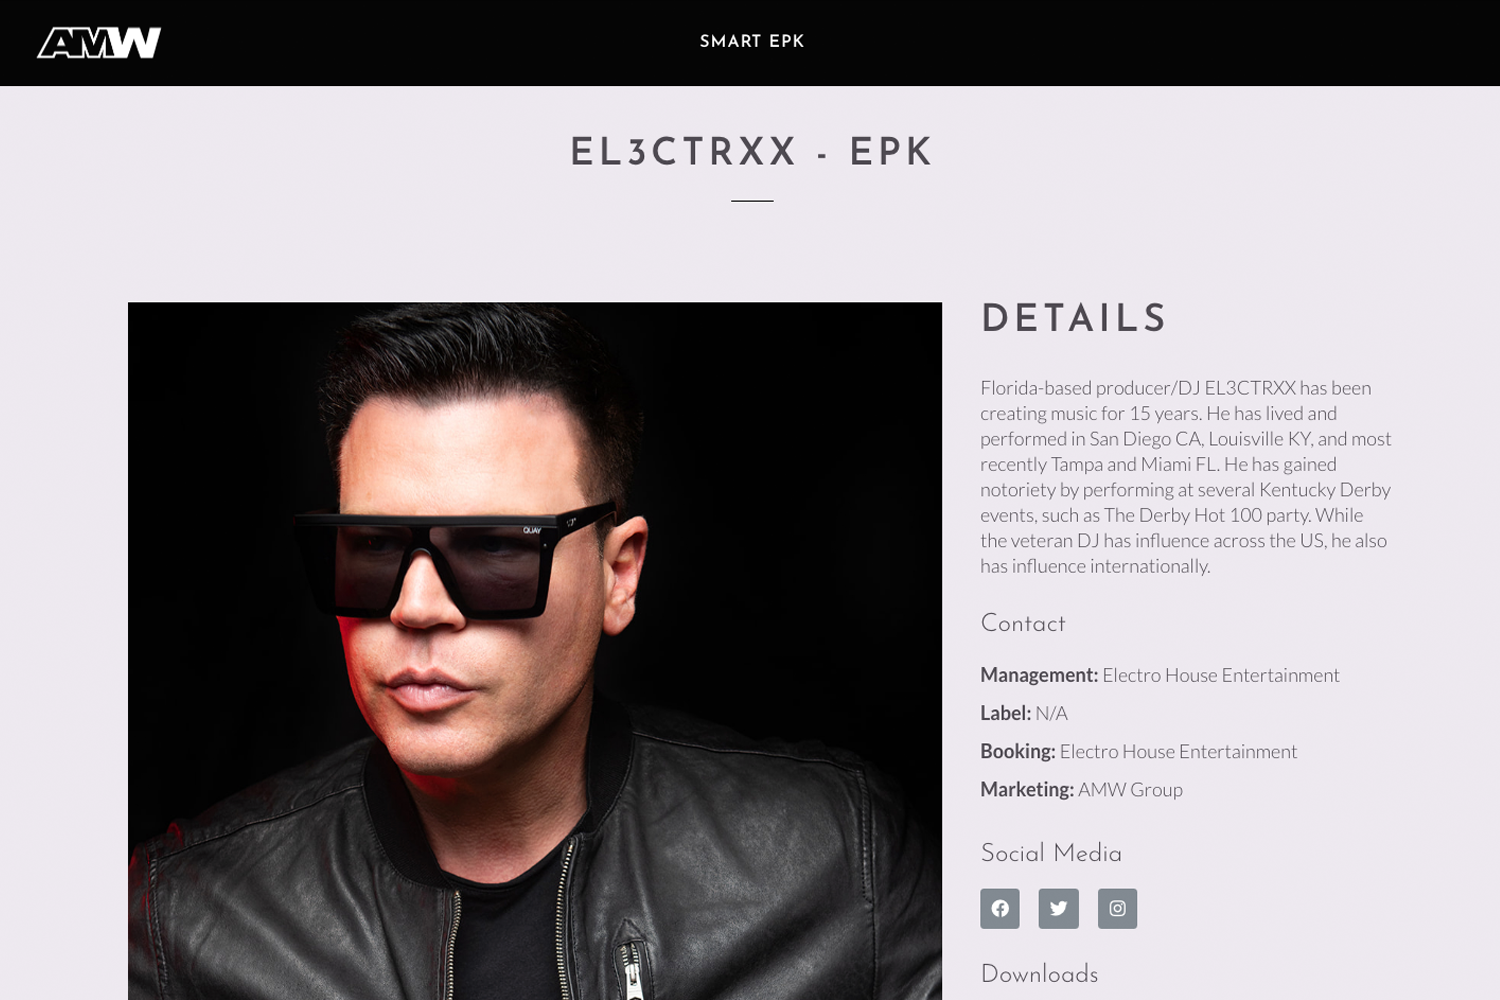 Electronic Press Kit - EPK